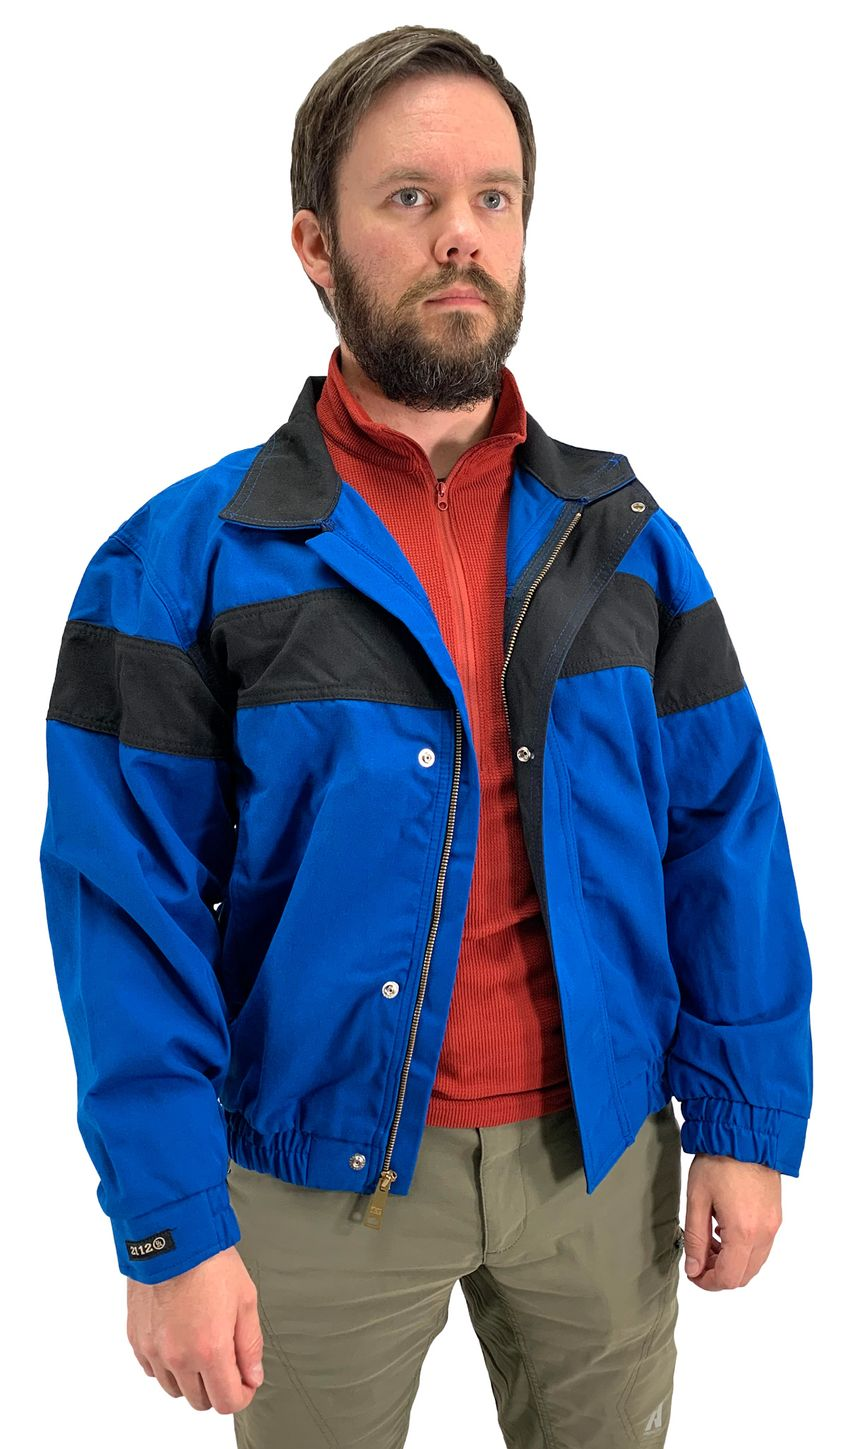 workrite-fire-resistant-safety-jacket-300nx603006-6-oz-nomex-iiia-royal-blue-example.jpg